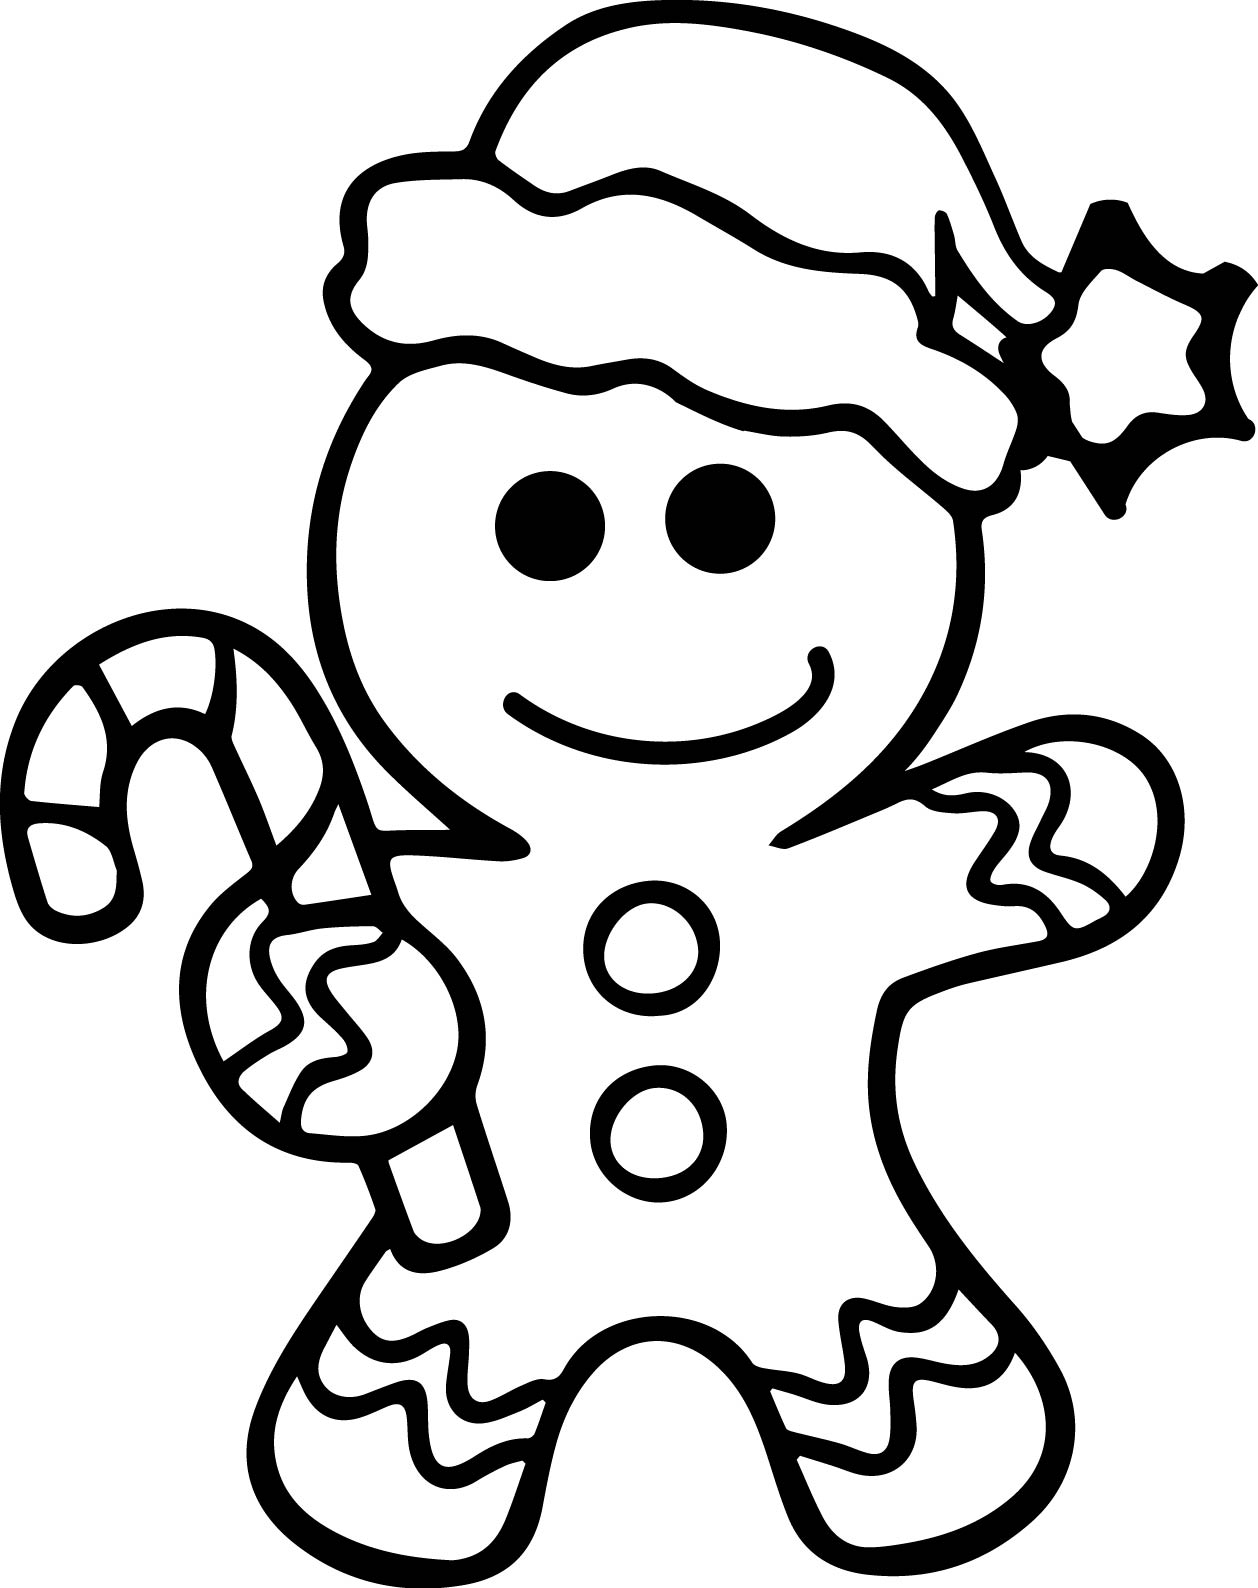 1258x1588 Gingerbread Man Coloring Page Wecoloringpage